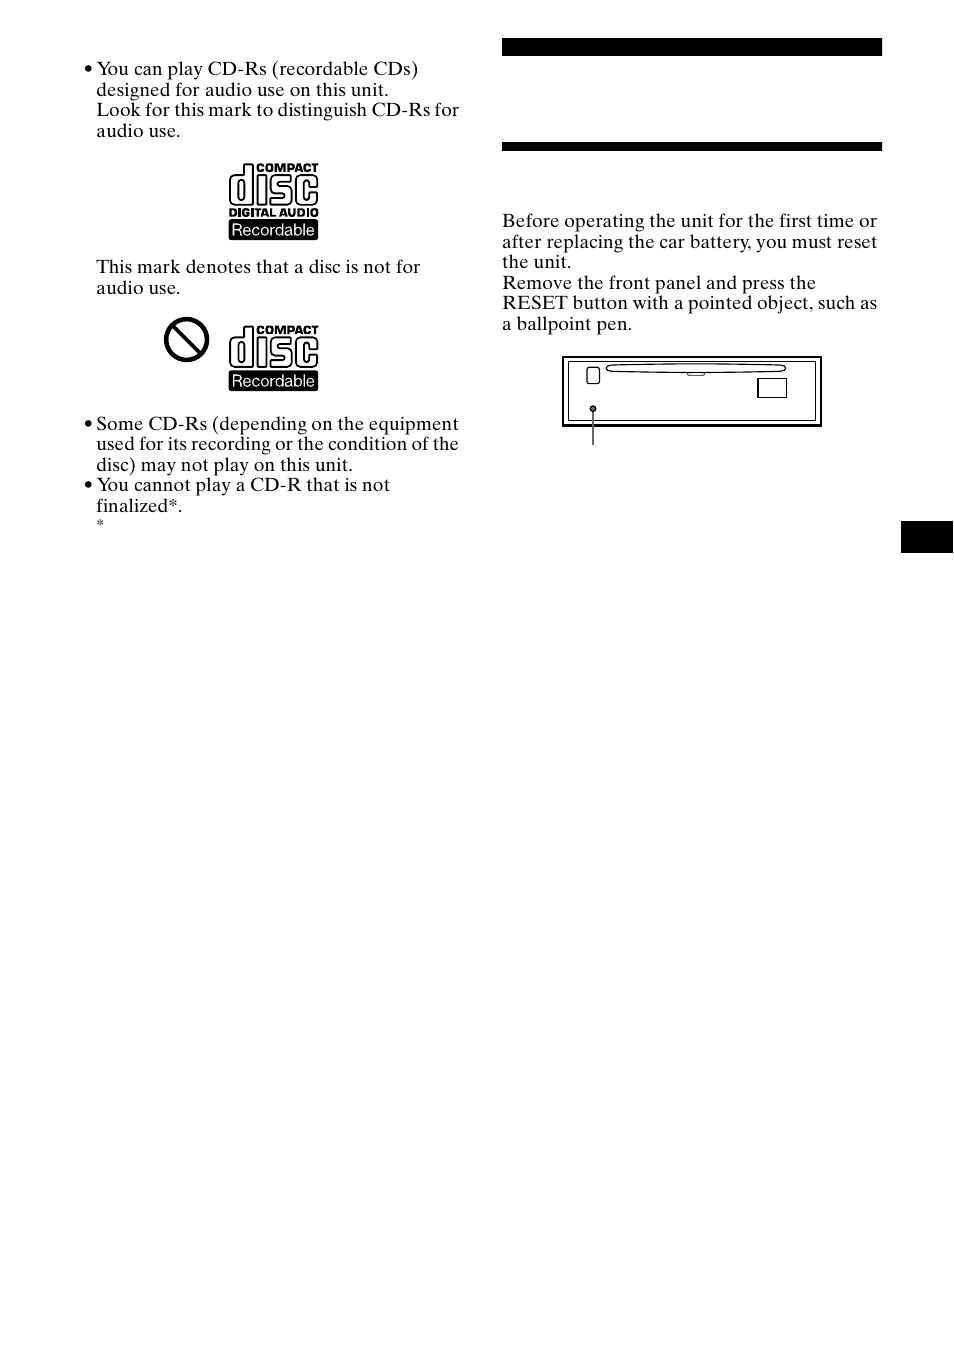 getting started, resetting the unit sony cdx ca650x user manual Sony Cdx Ca650x Installation getting started, resetting the unit sony cdx ca650x user manual page 7